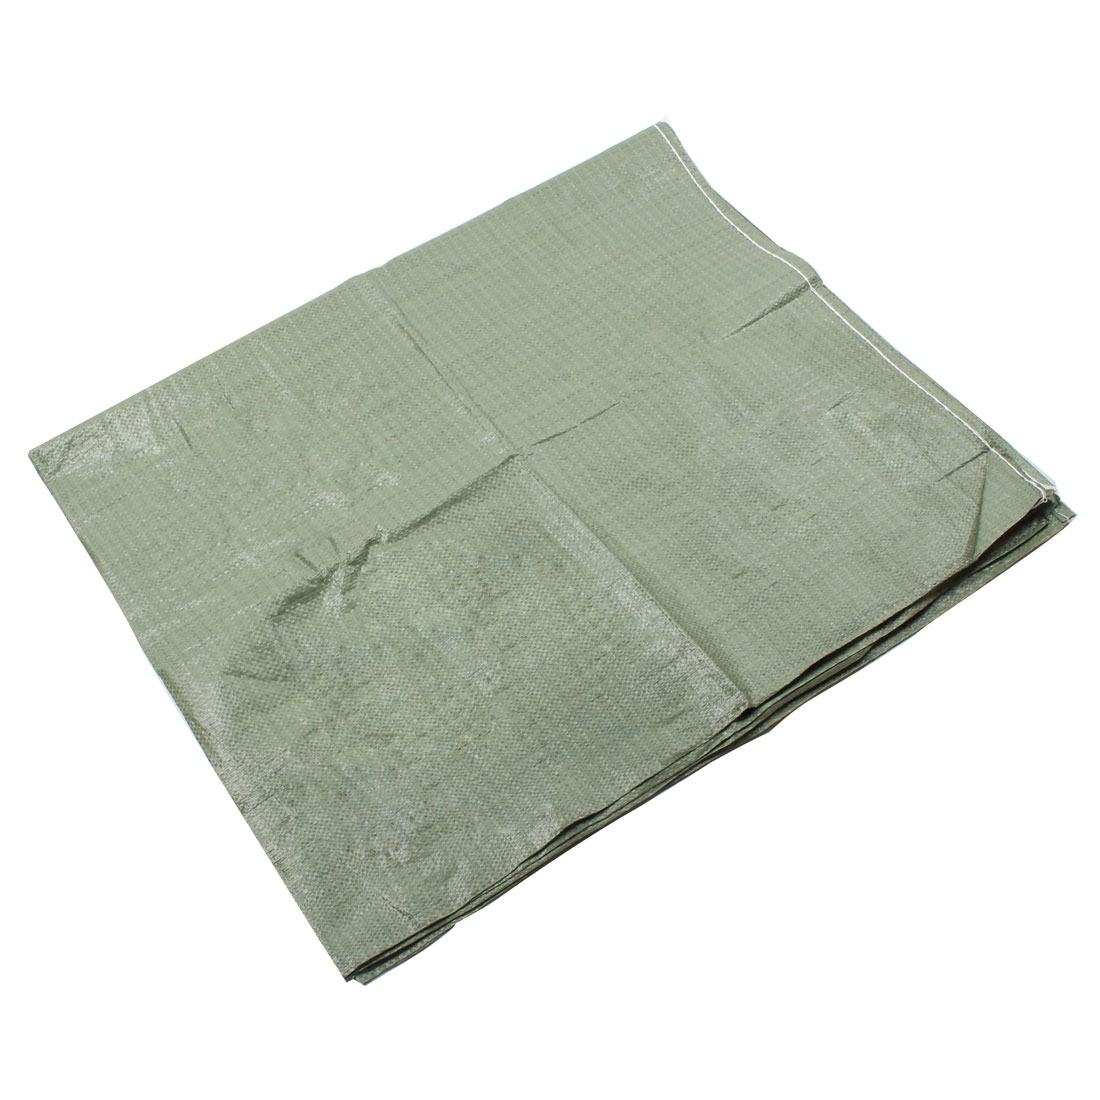 Plastic Courier Cargo Express Packing Snakeskin Bag Green 150 x 180cm 2 Pcs